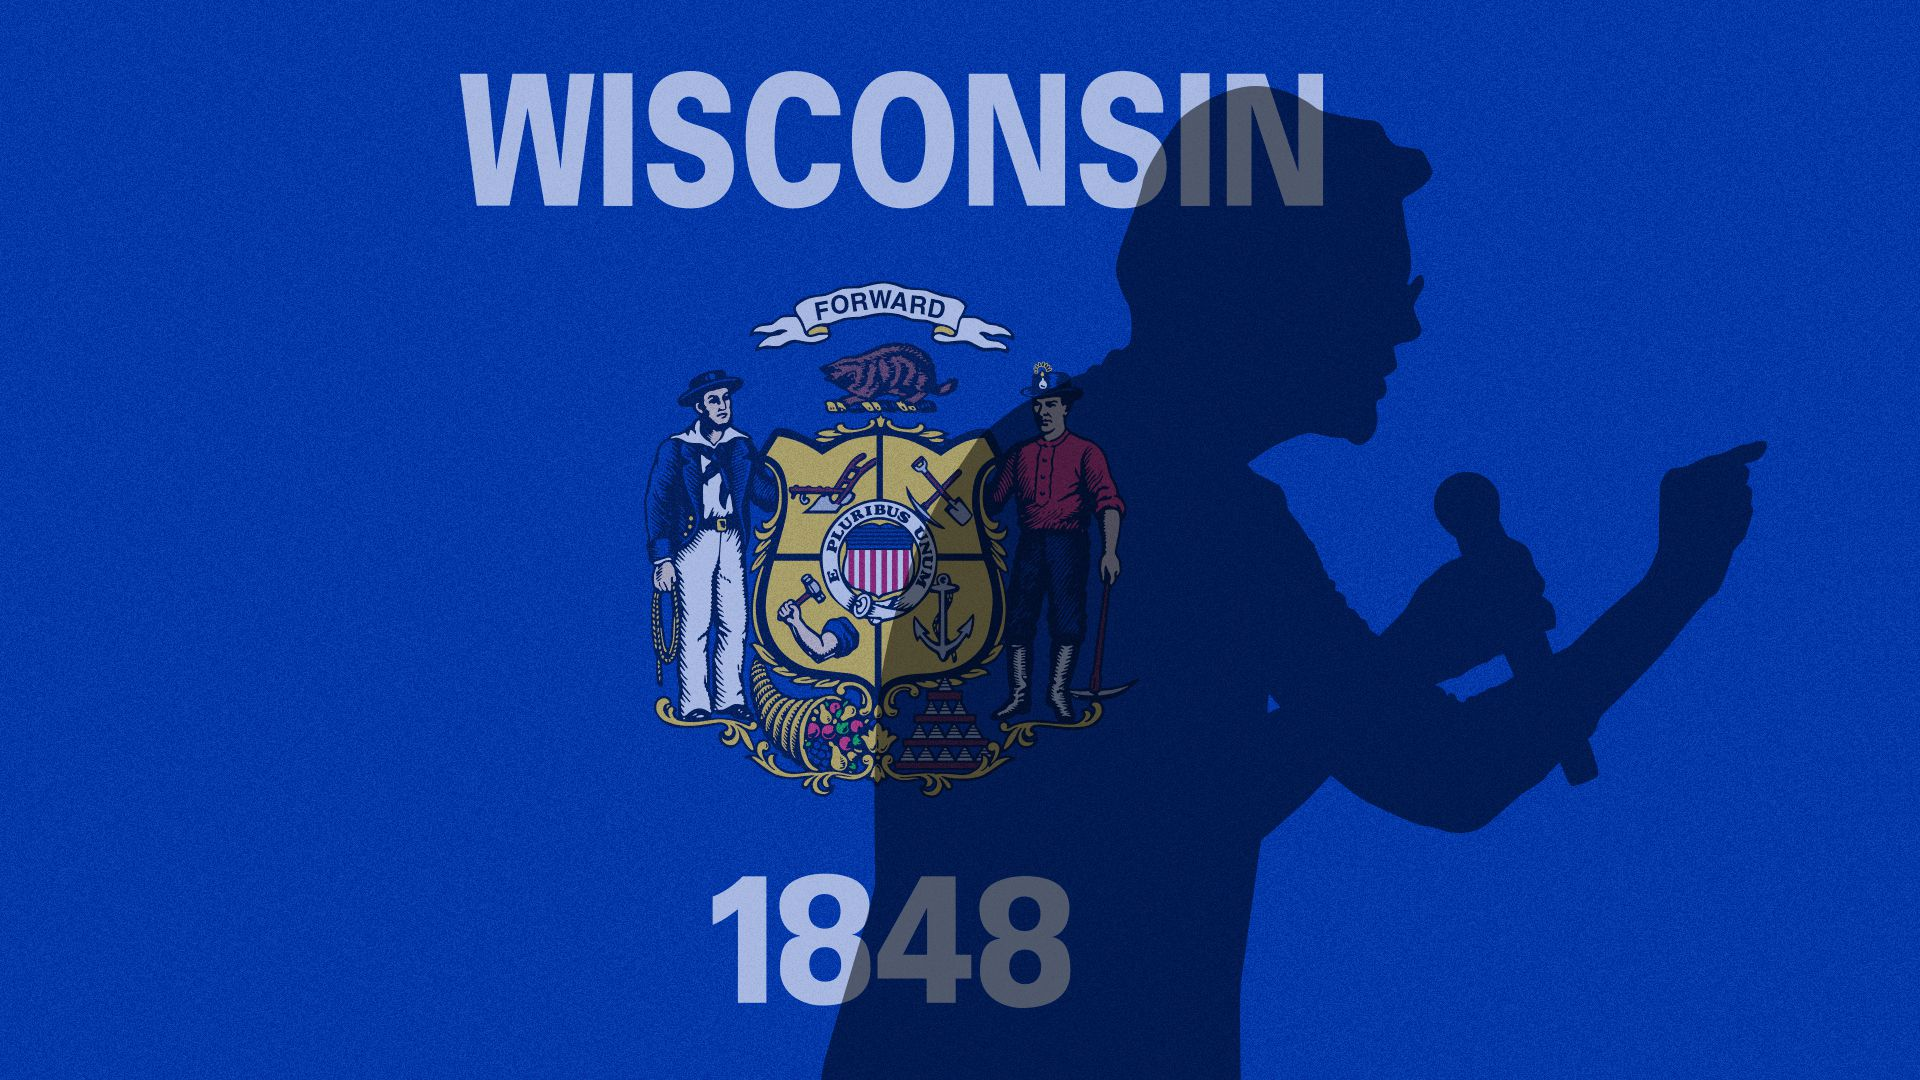 Illustration of Elizabeth Warren's shadow casting over the state flag of Wisconsin